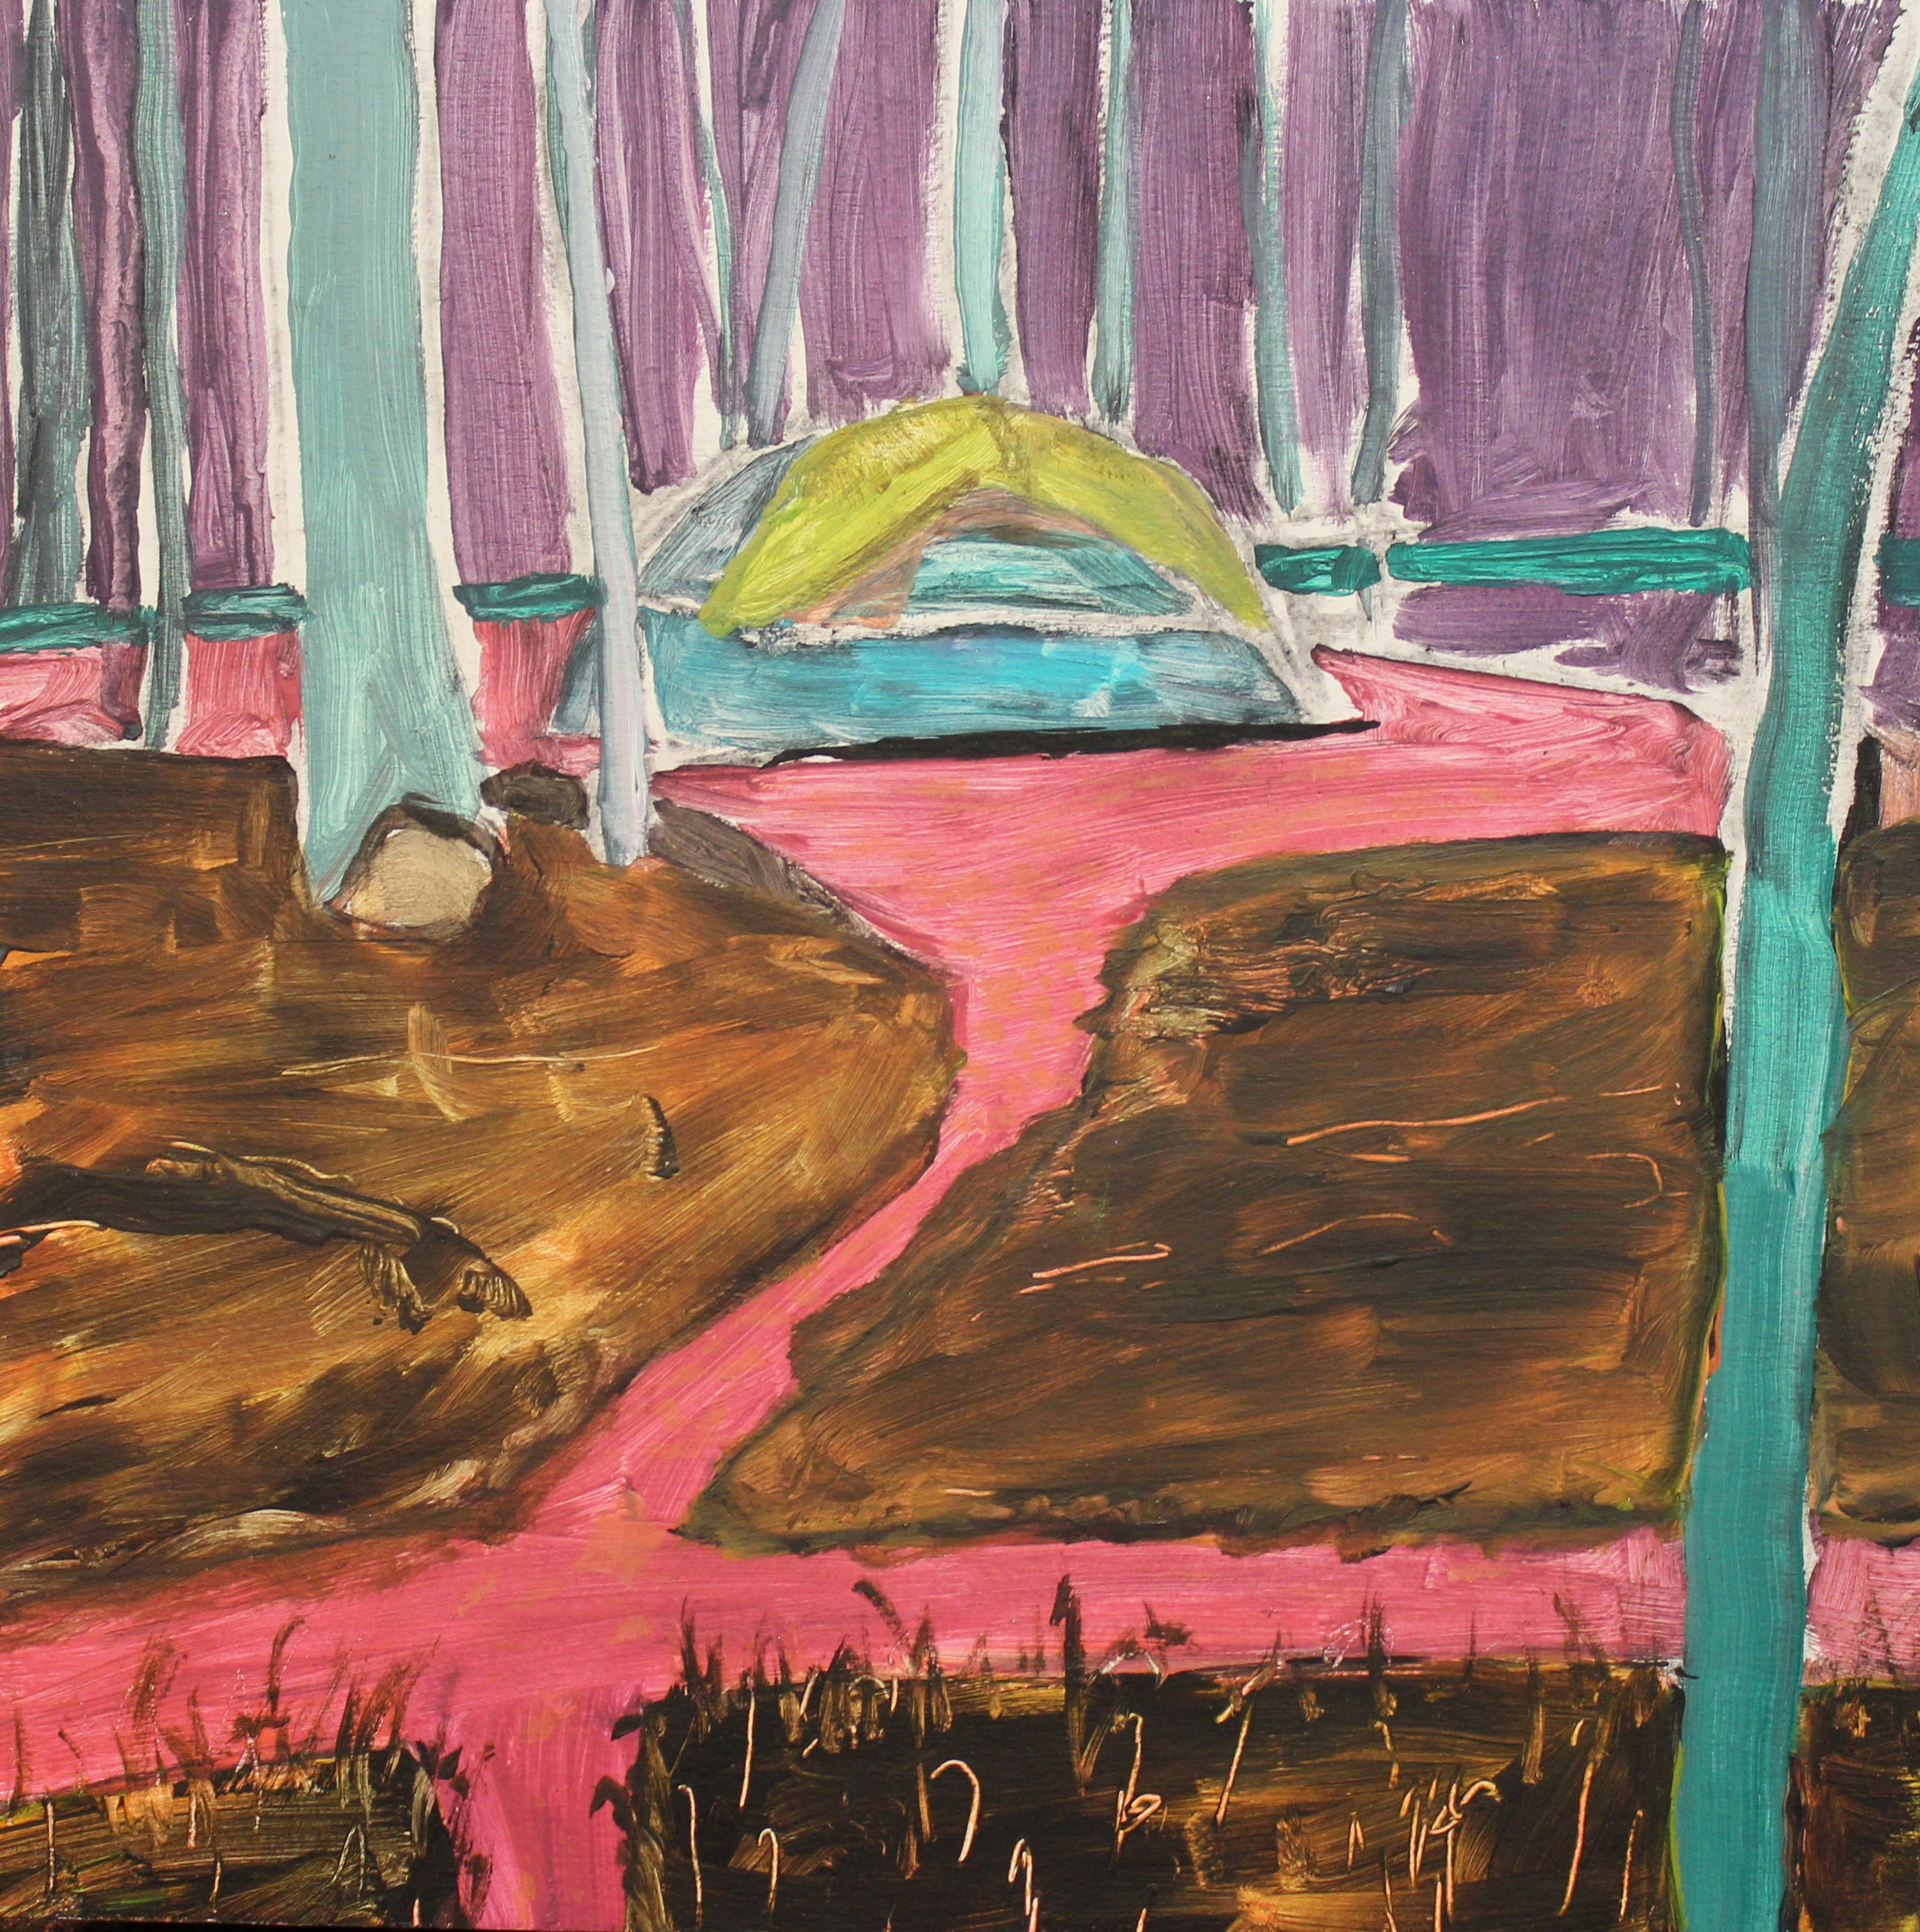 "Tent  acrylic on wood  10"" x 10""  2018"